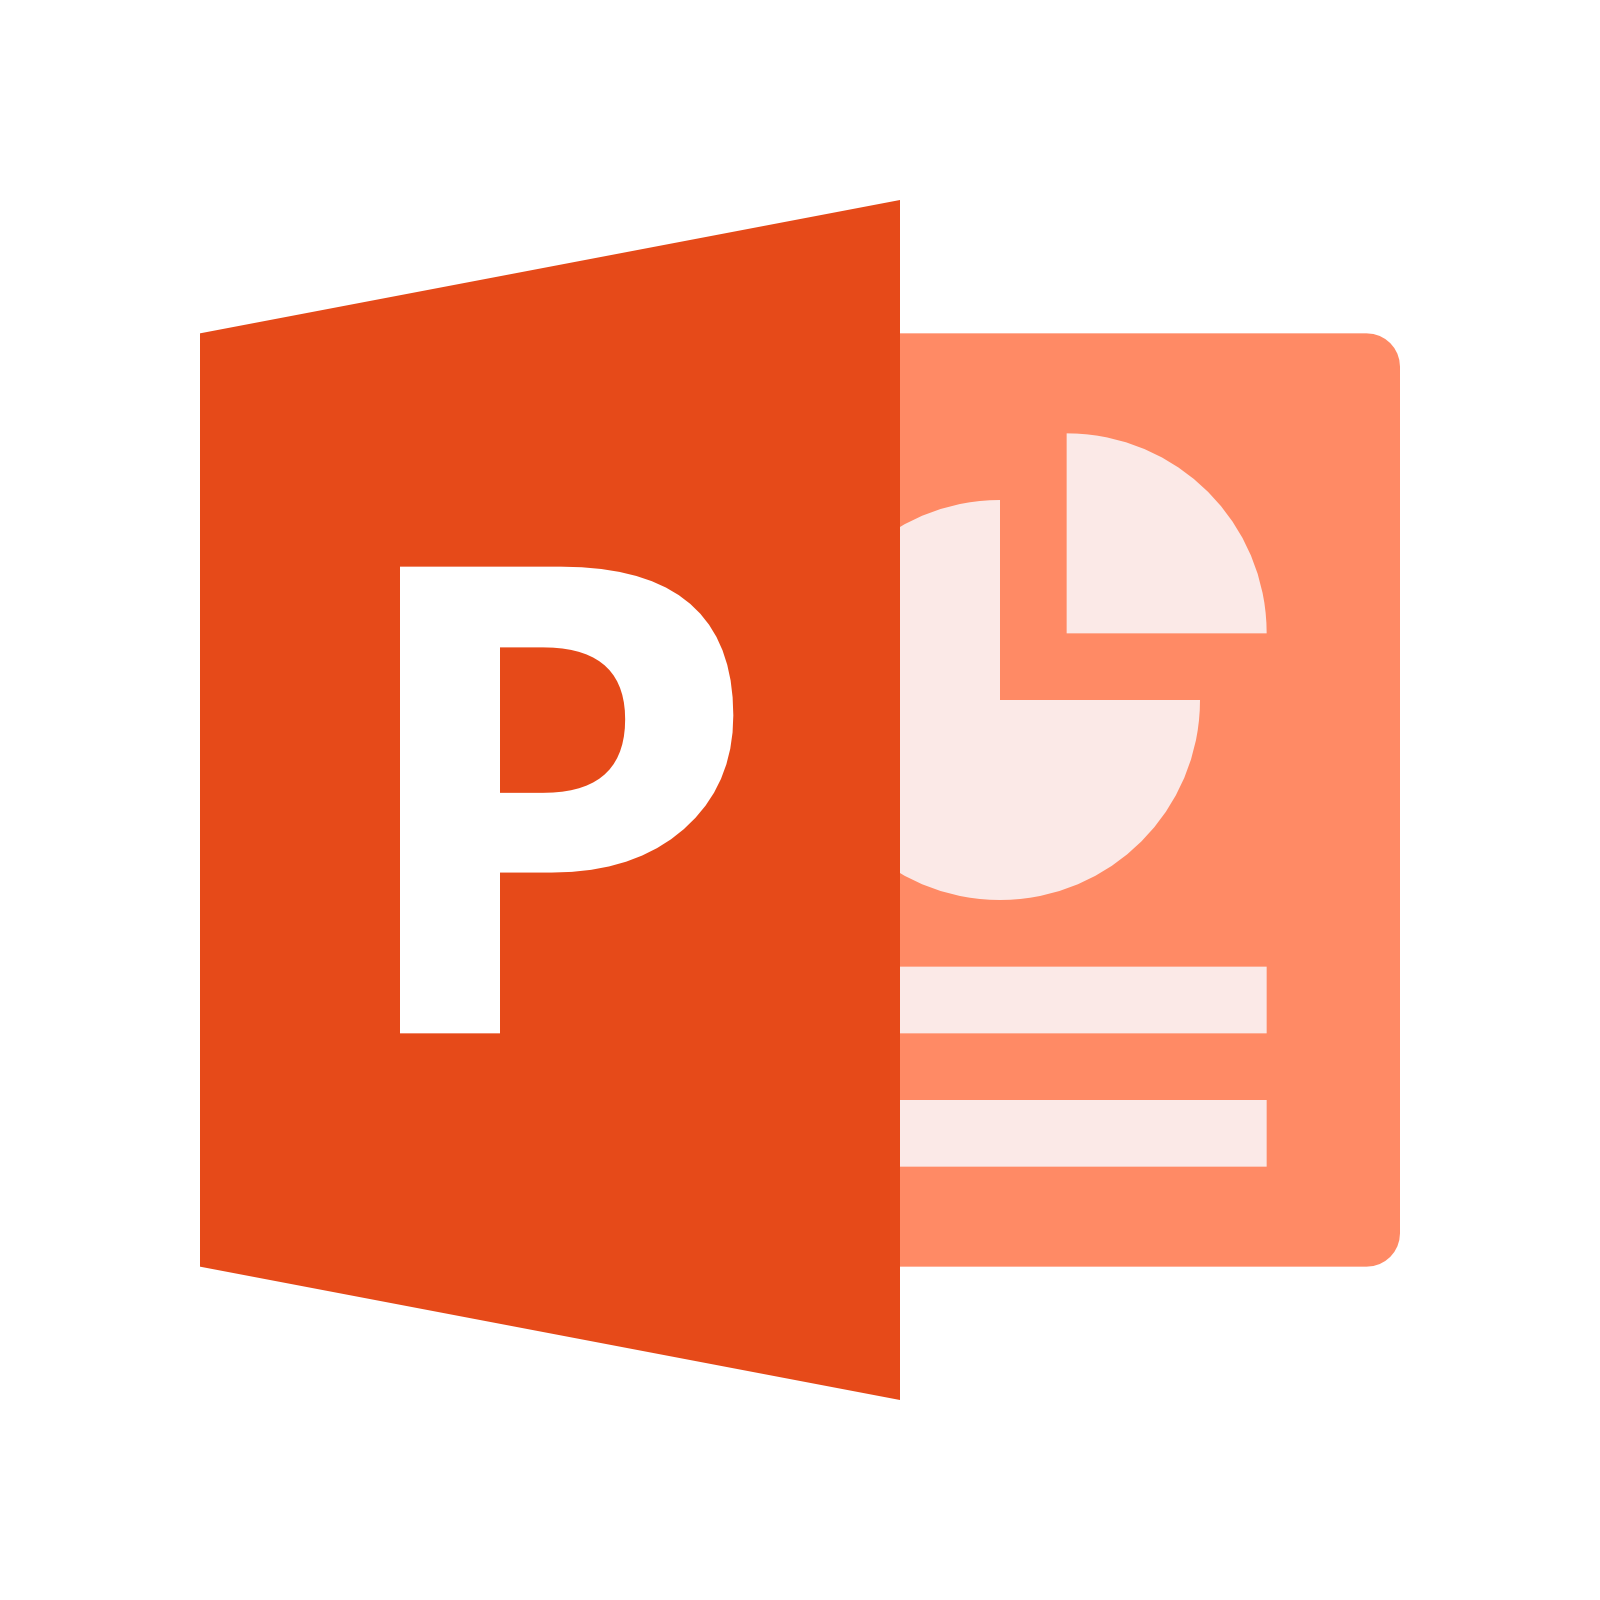 powerpoint-ms-logo